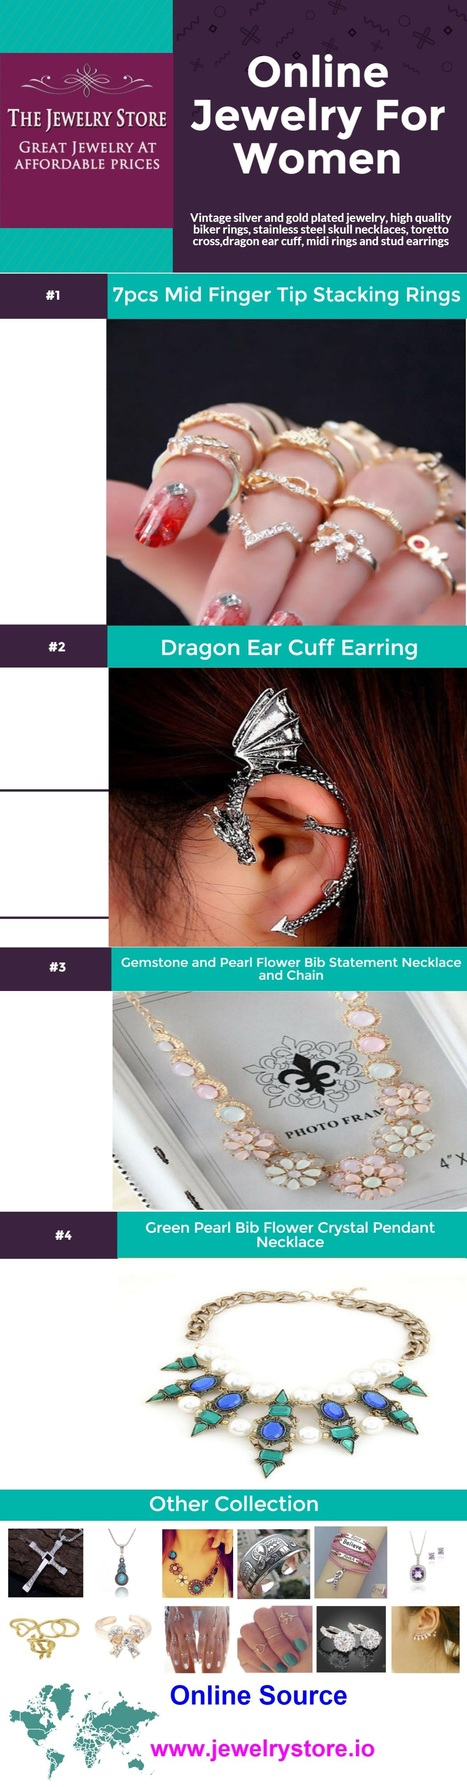 Online Jewelry for Women Info Graphic   Online Shopping   Scoop.it